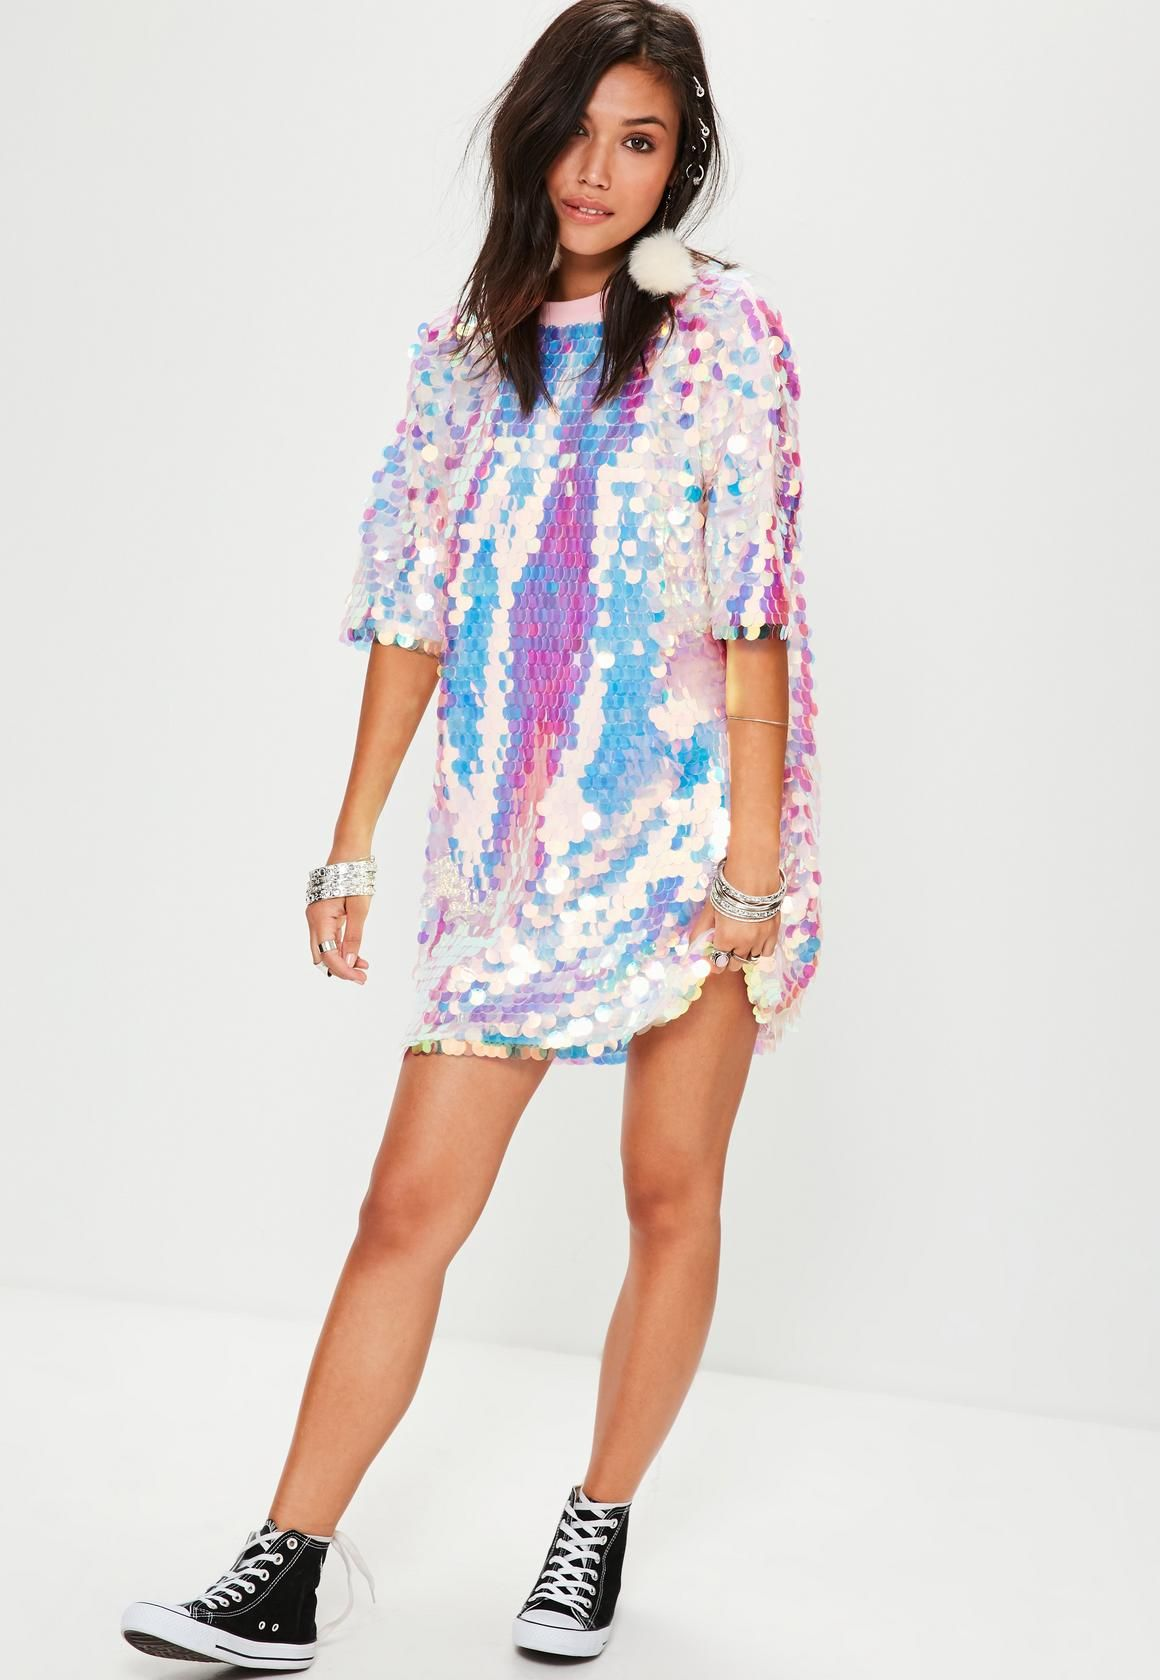 77052b39852cd Missguided - Pink Sequin T Shirt Dress | HALSEY in 2019 | Sequin t ...